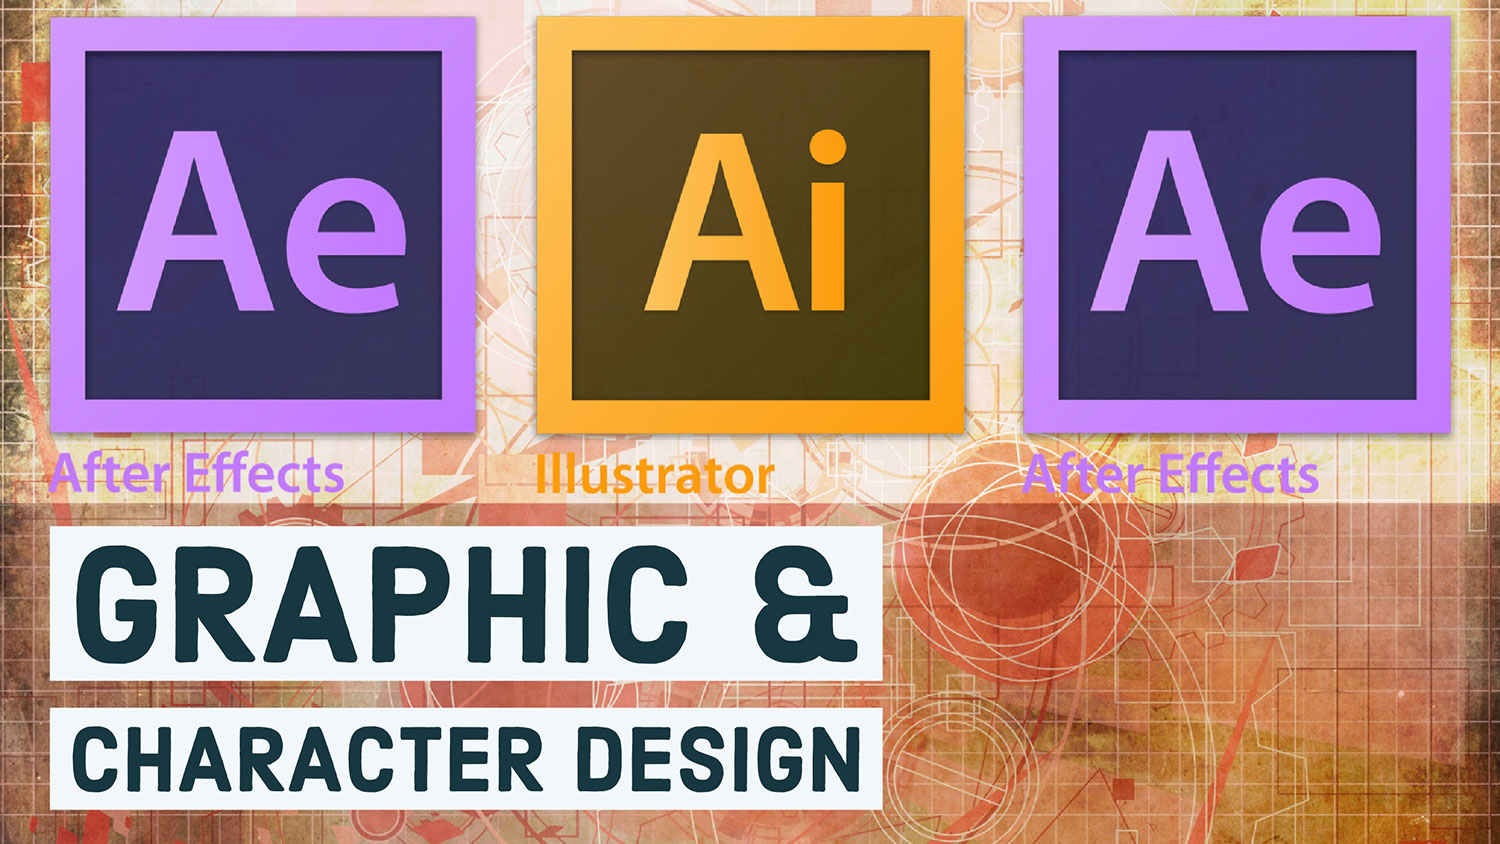 Details of our classes in Graphic and Character Design using Adobe Creative Cloud